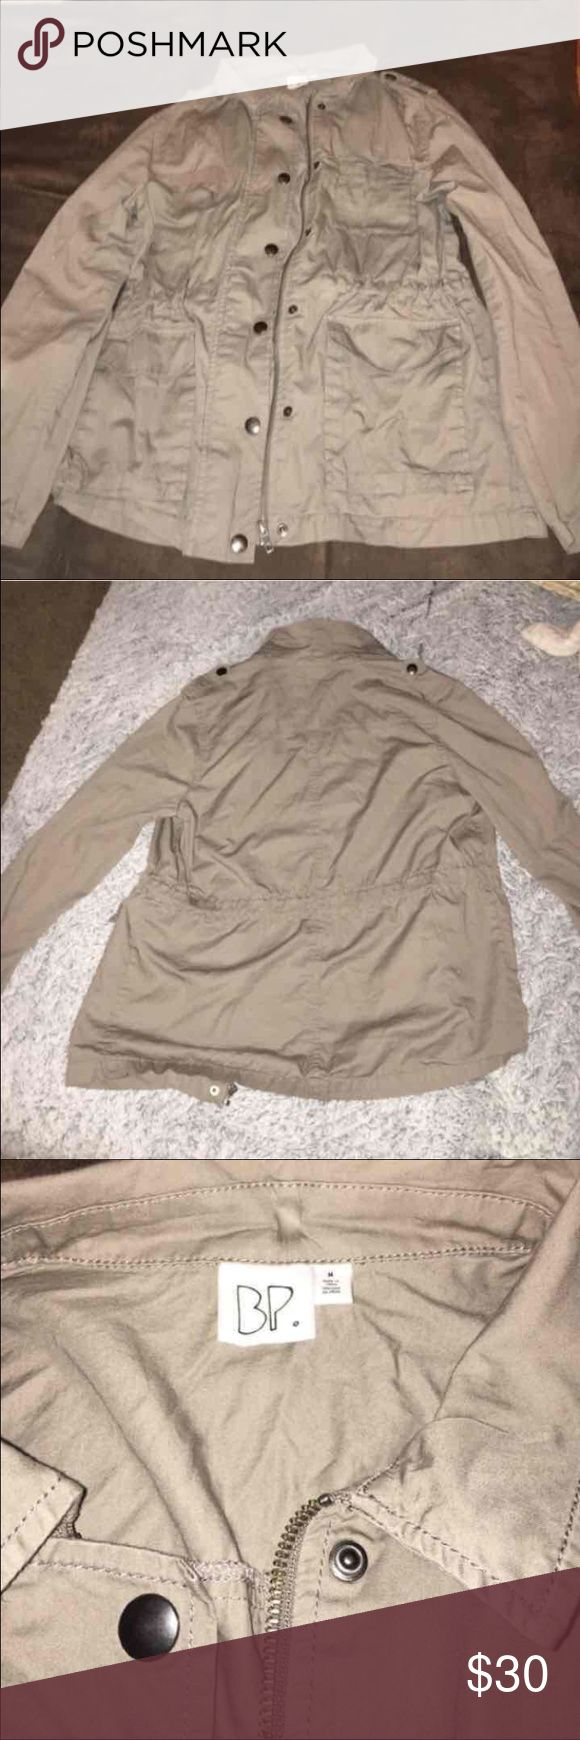 Army Style Jacket Nordstrom's BP Tan colored Army Style Jacket size Medium bp Jackets & Coats